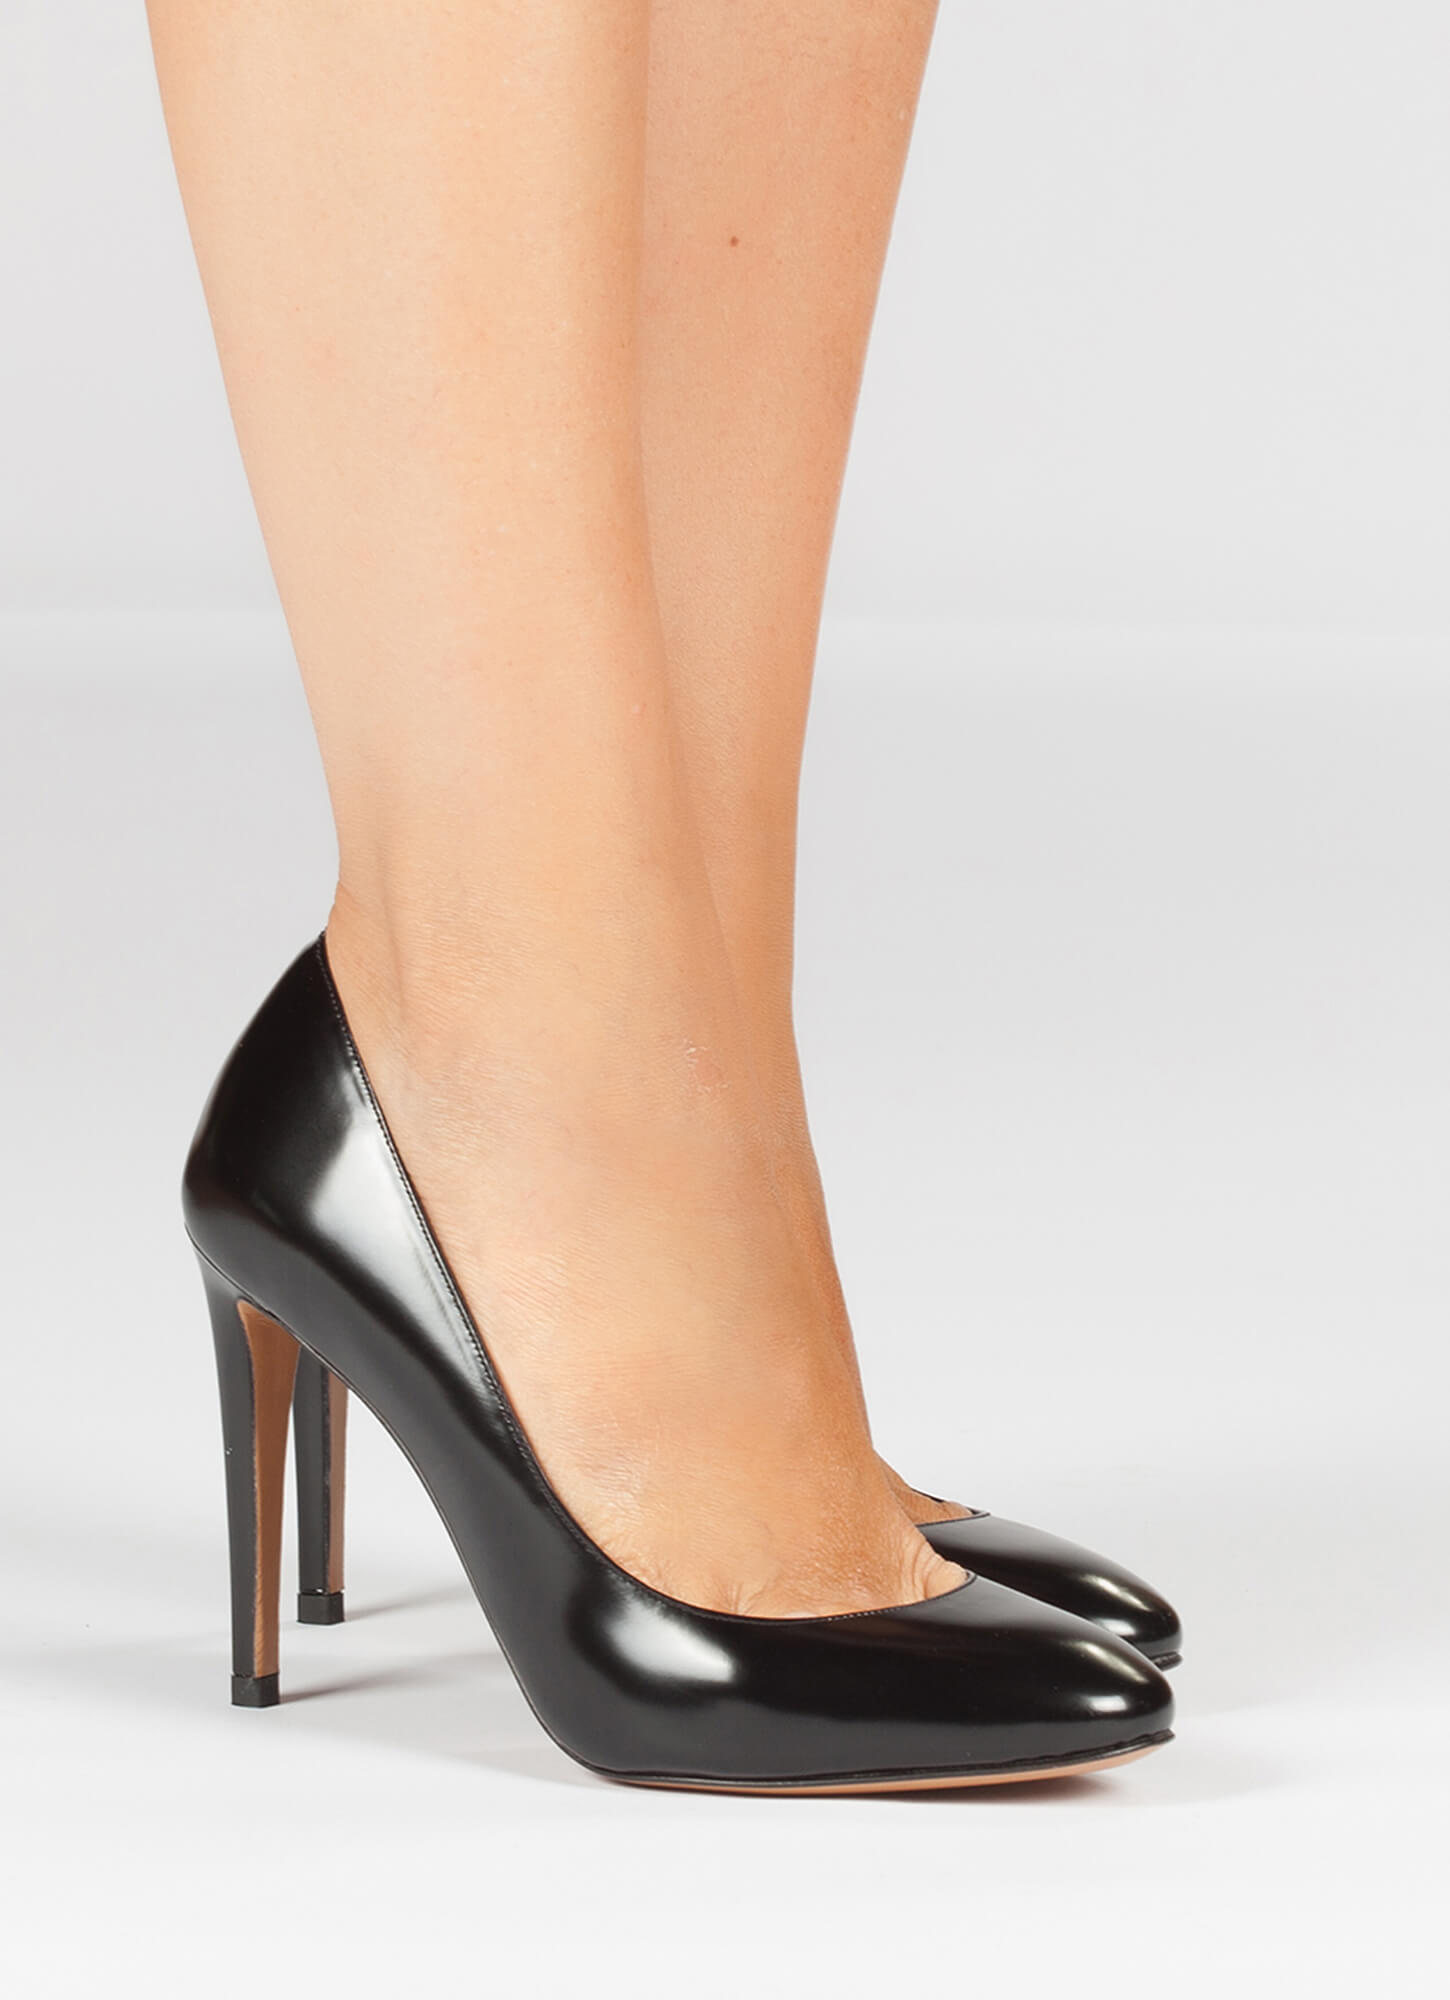 Black high heel shoes - online shoe store Pura Lopez ...